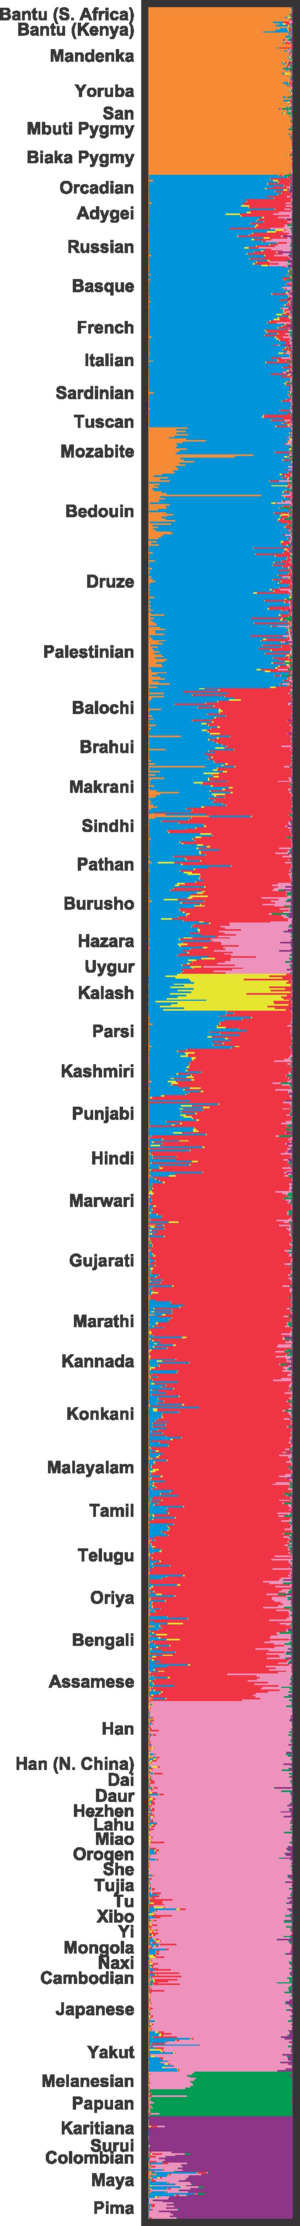 Human genetic variation - Chart showing human genetic clustering.